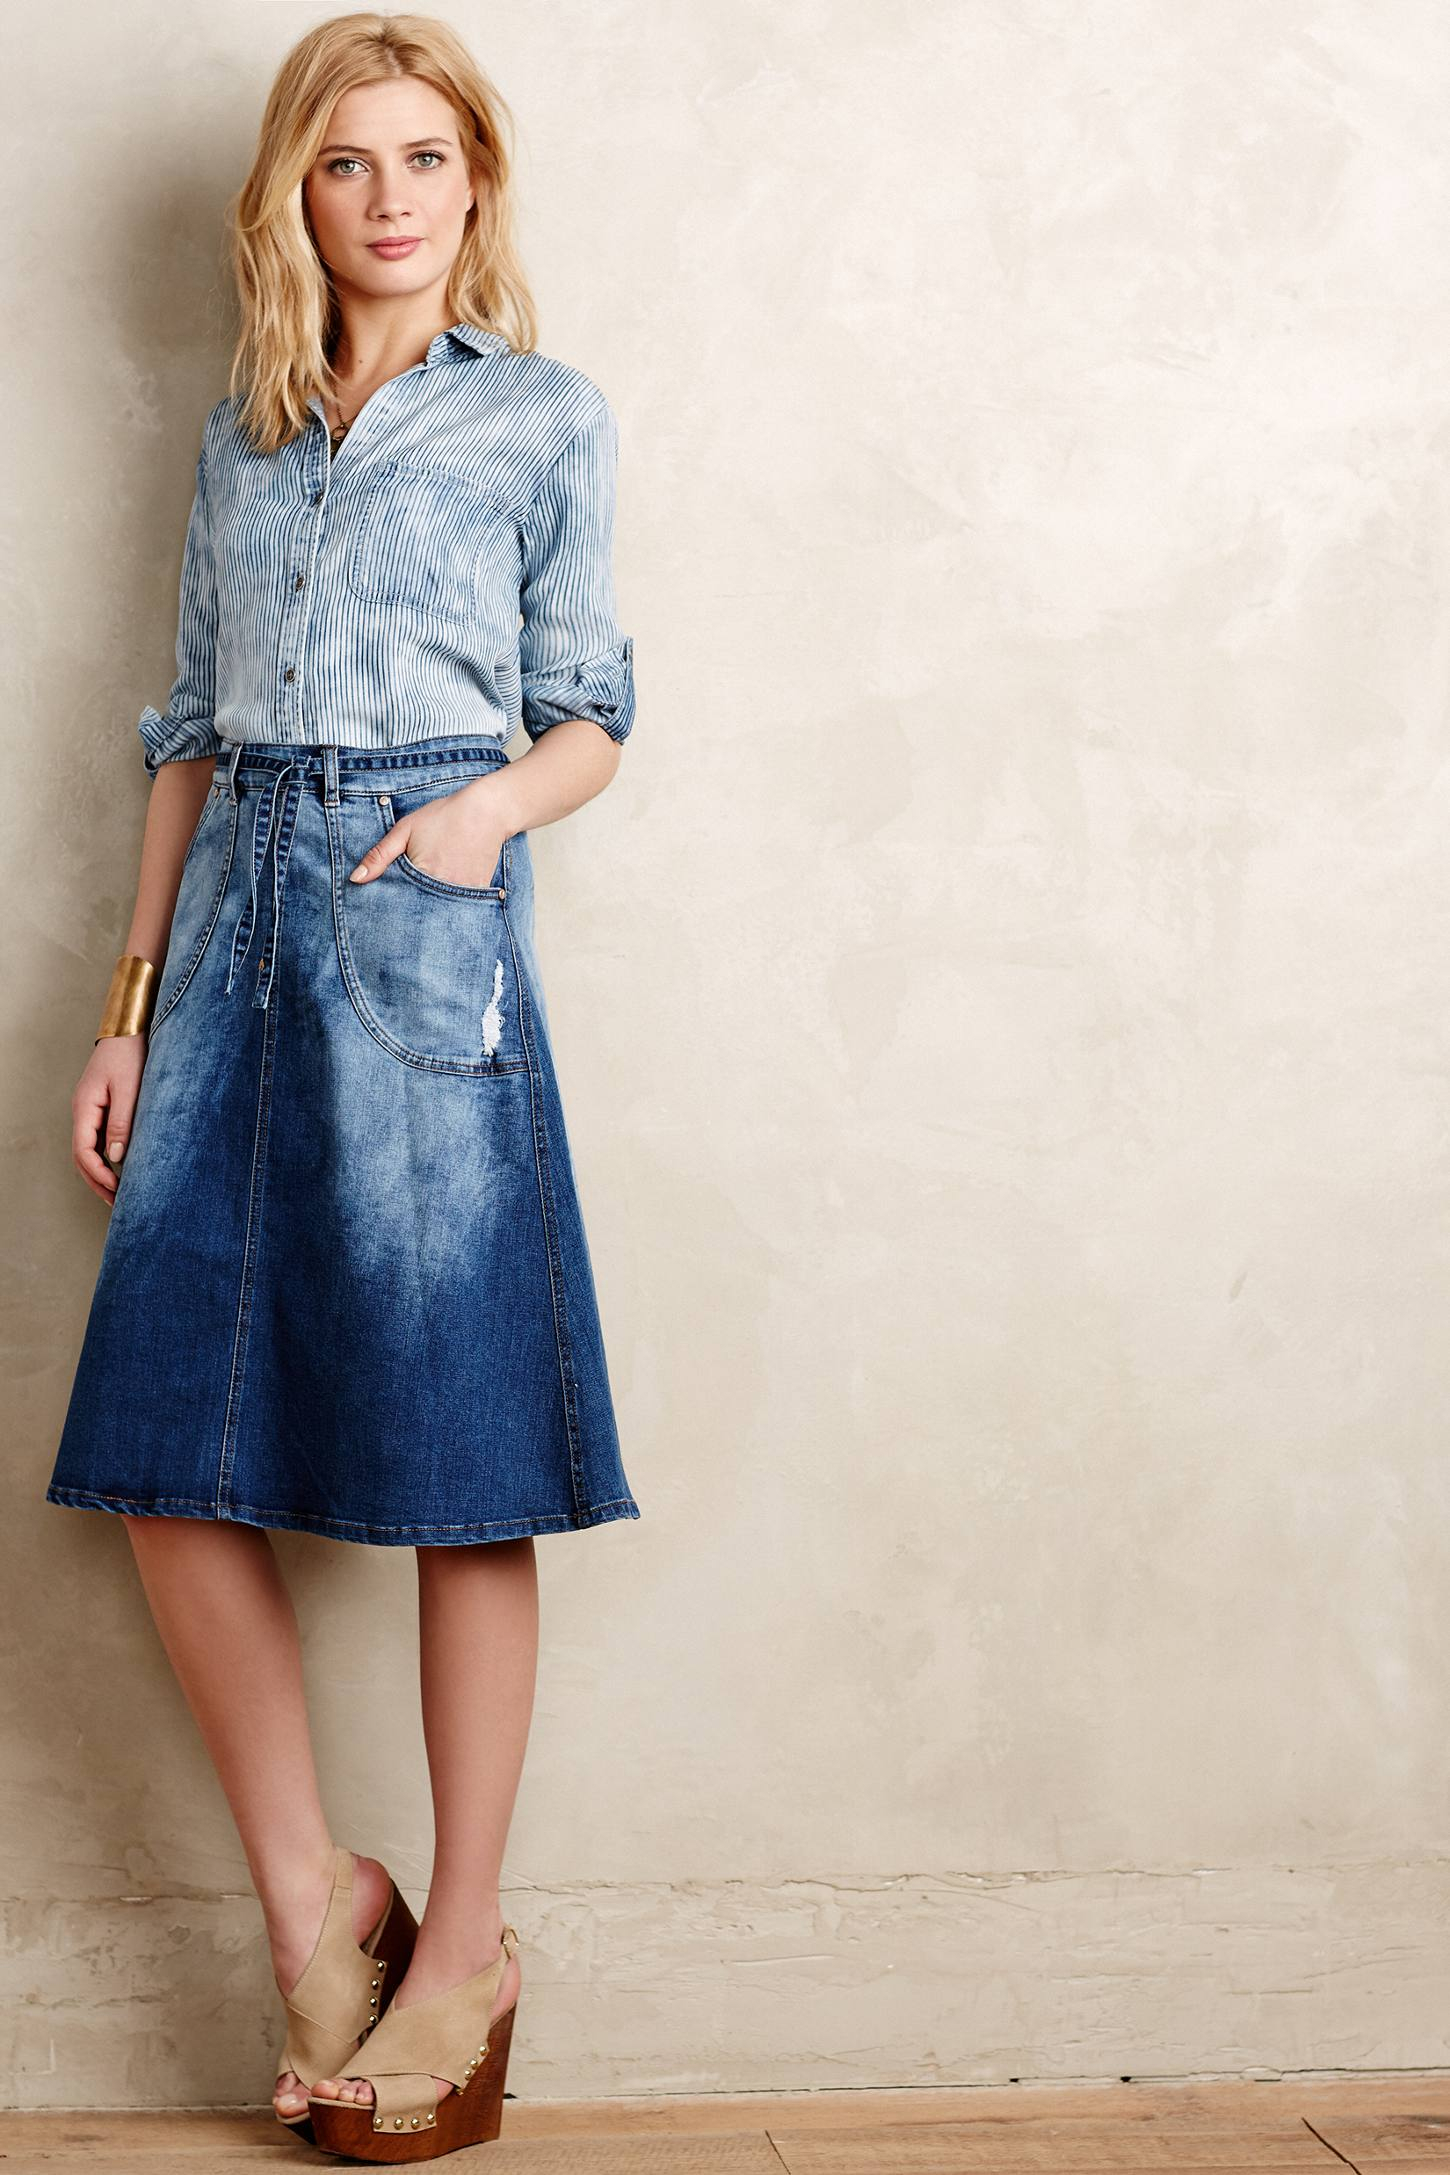 38a9ecb2e3 What To Wear With Midi Denim Skirt